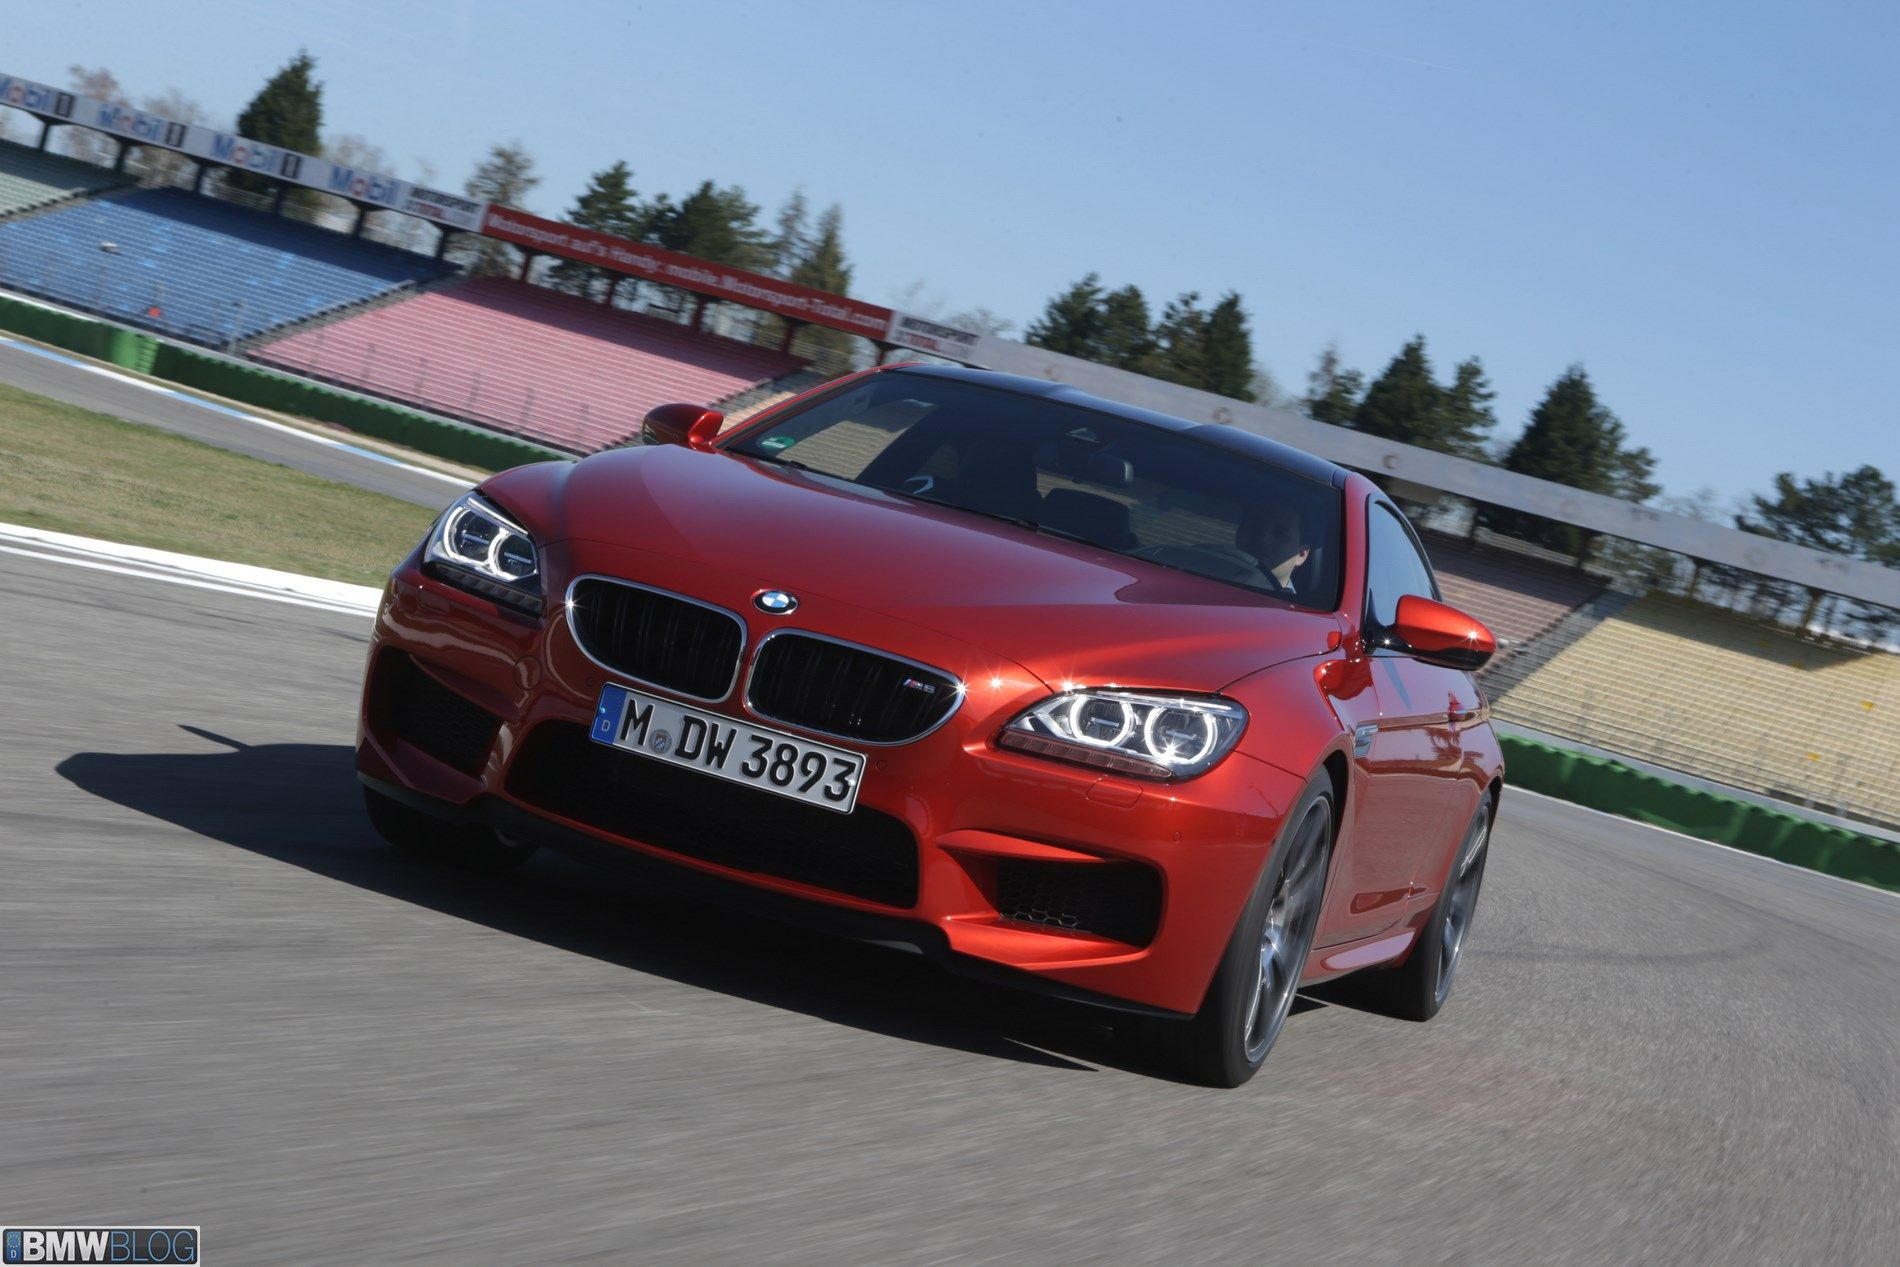 Which To Buy Pre Owned Bmw M6 Or Brand New Bmw M4 Bmw New Bmw